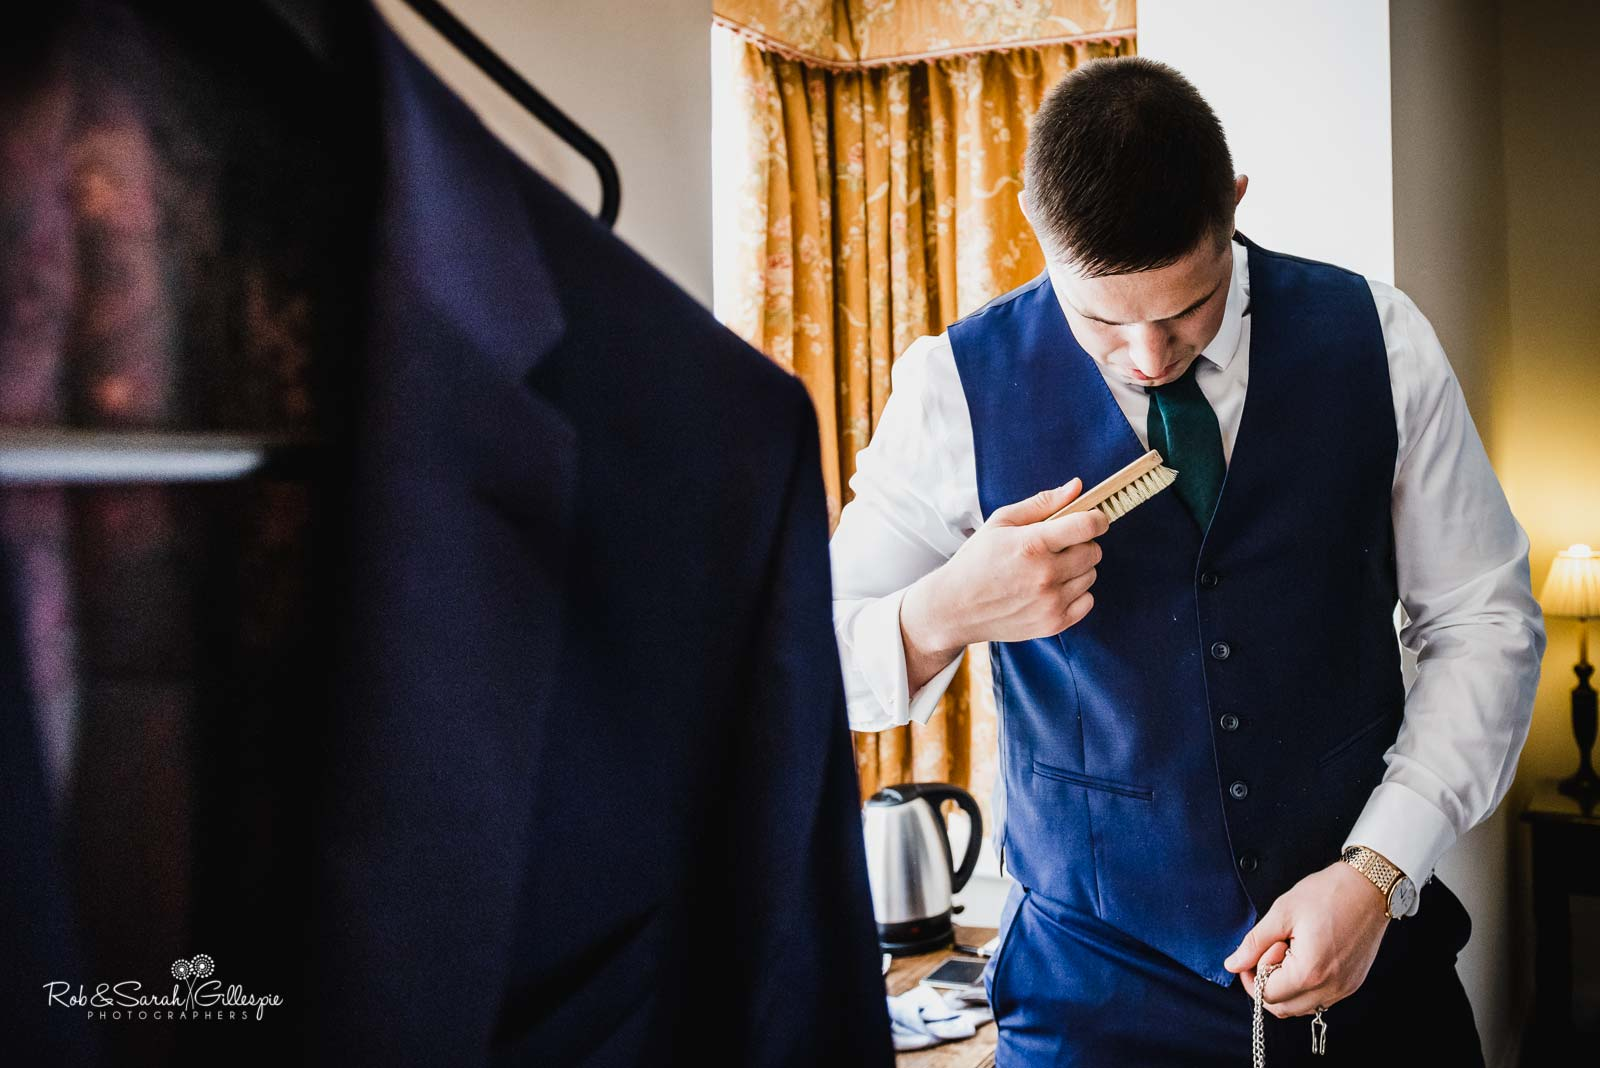 Groomsman brushes waistcoat preparing for wedding at Wethele Manor